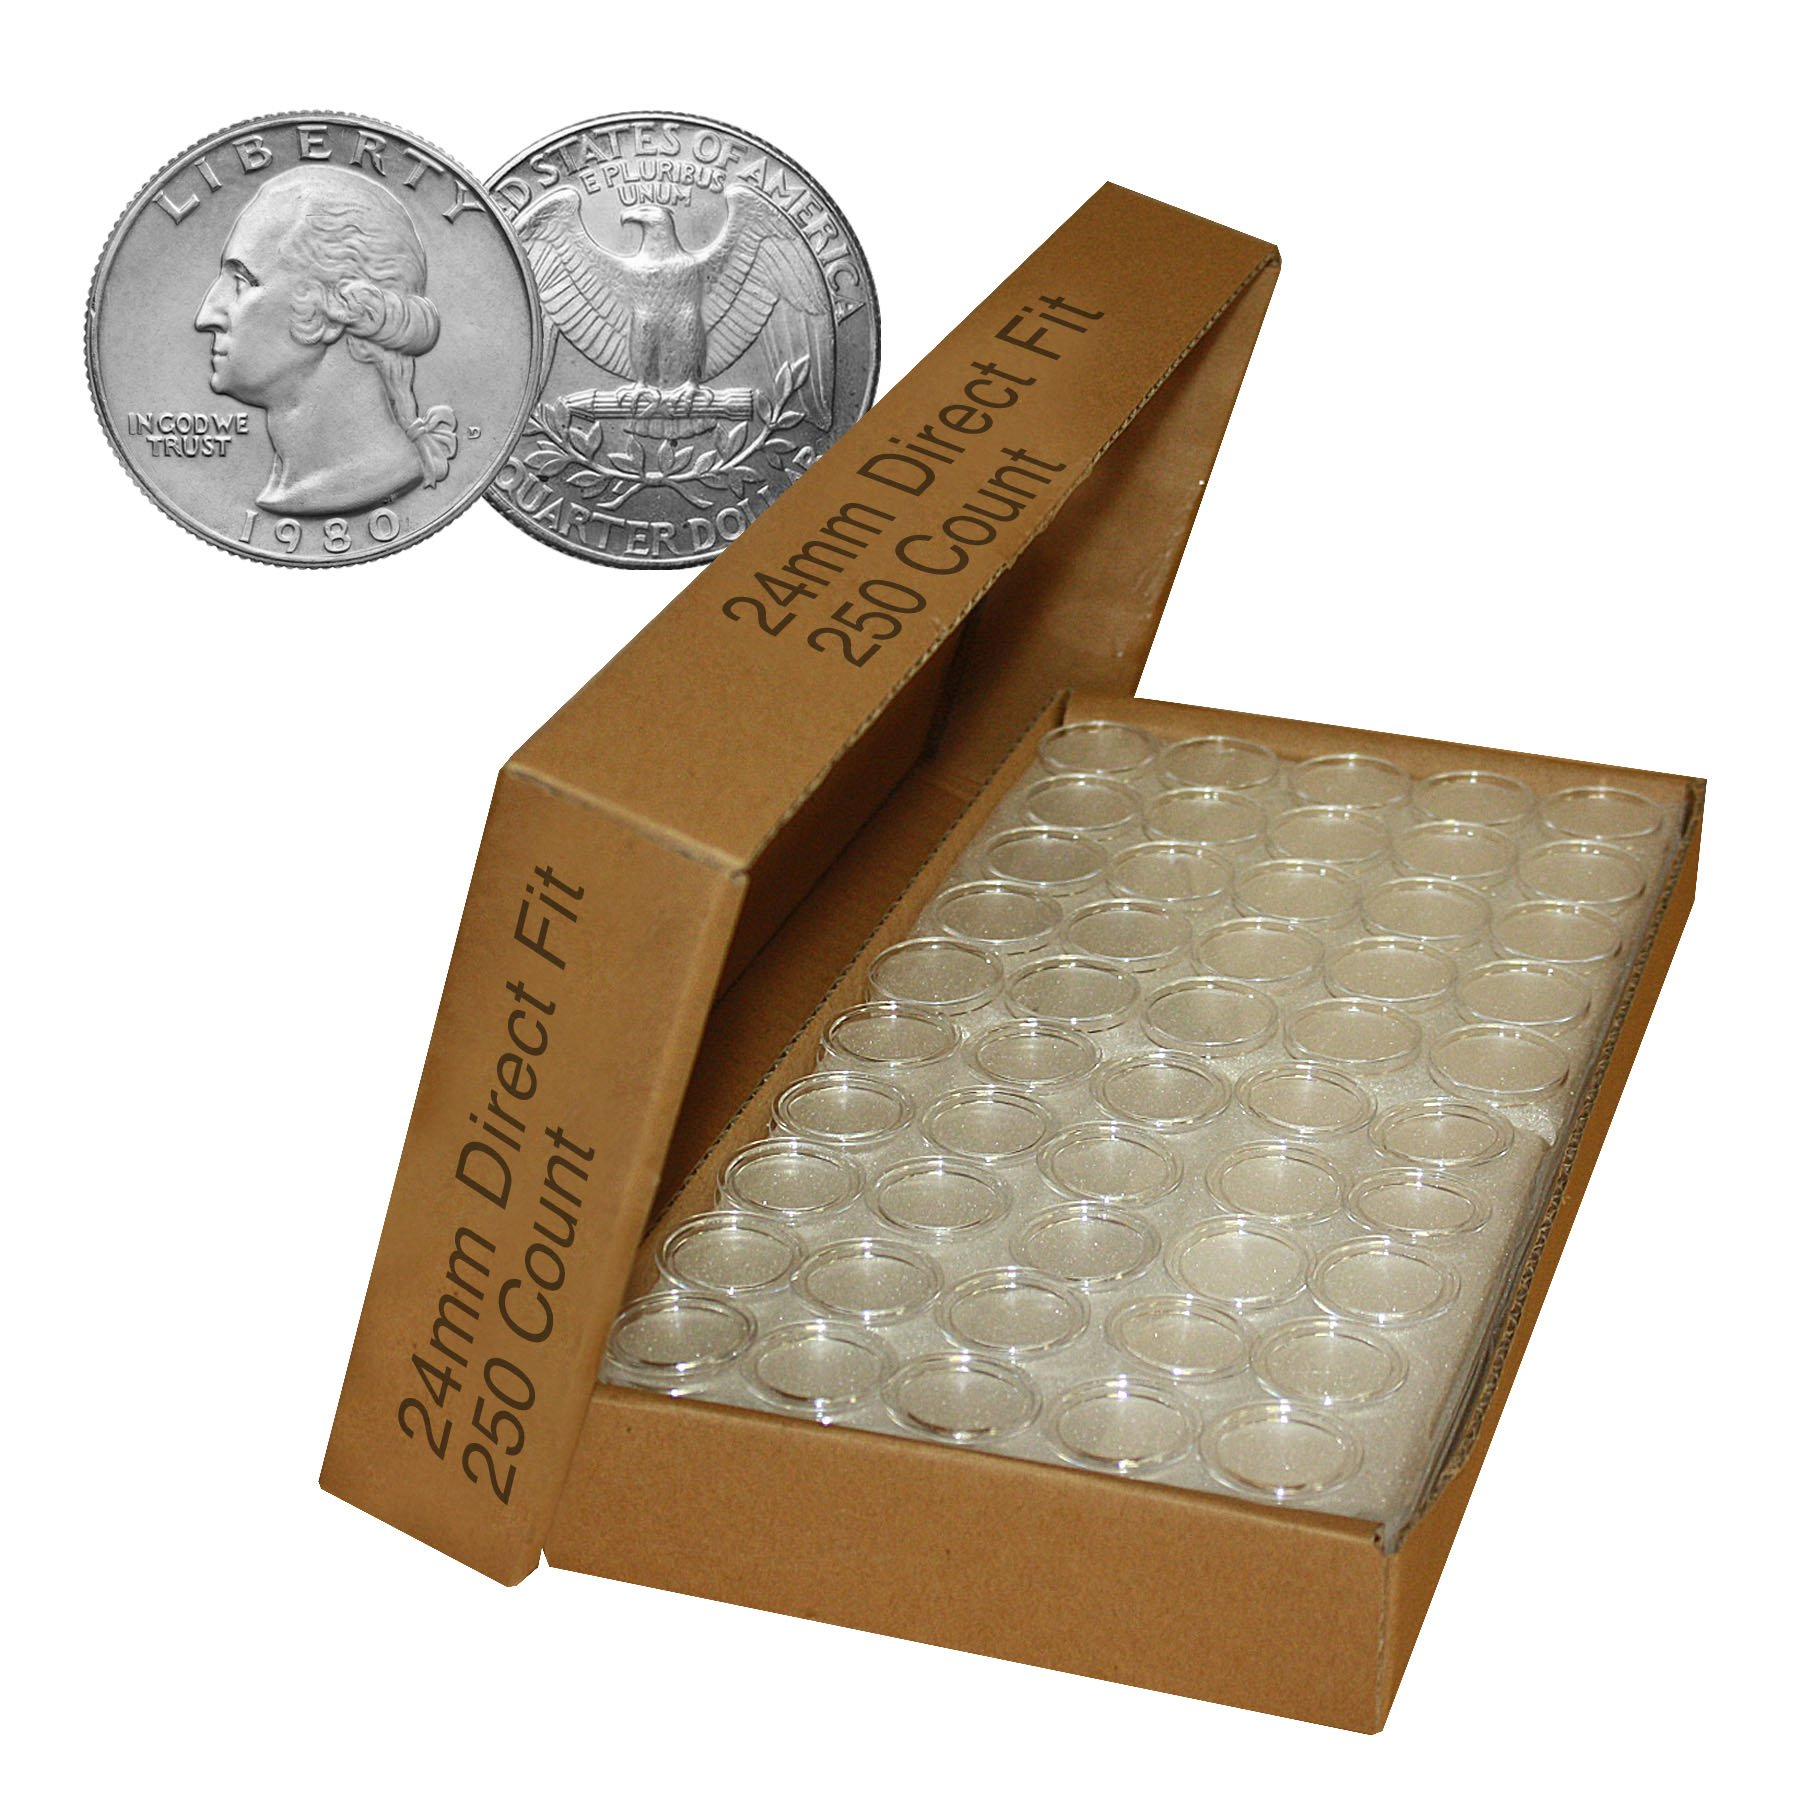 Direct Fit Airtight 24mm Coin Holder Capsules for QUARTERS - CASE QTY: 250